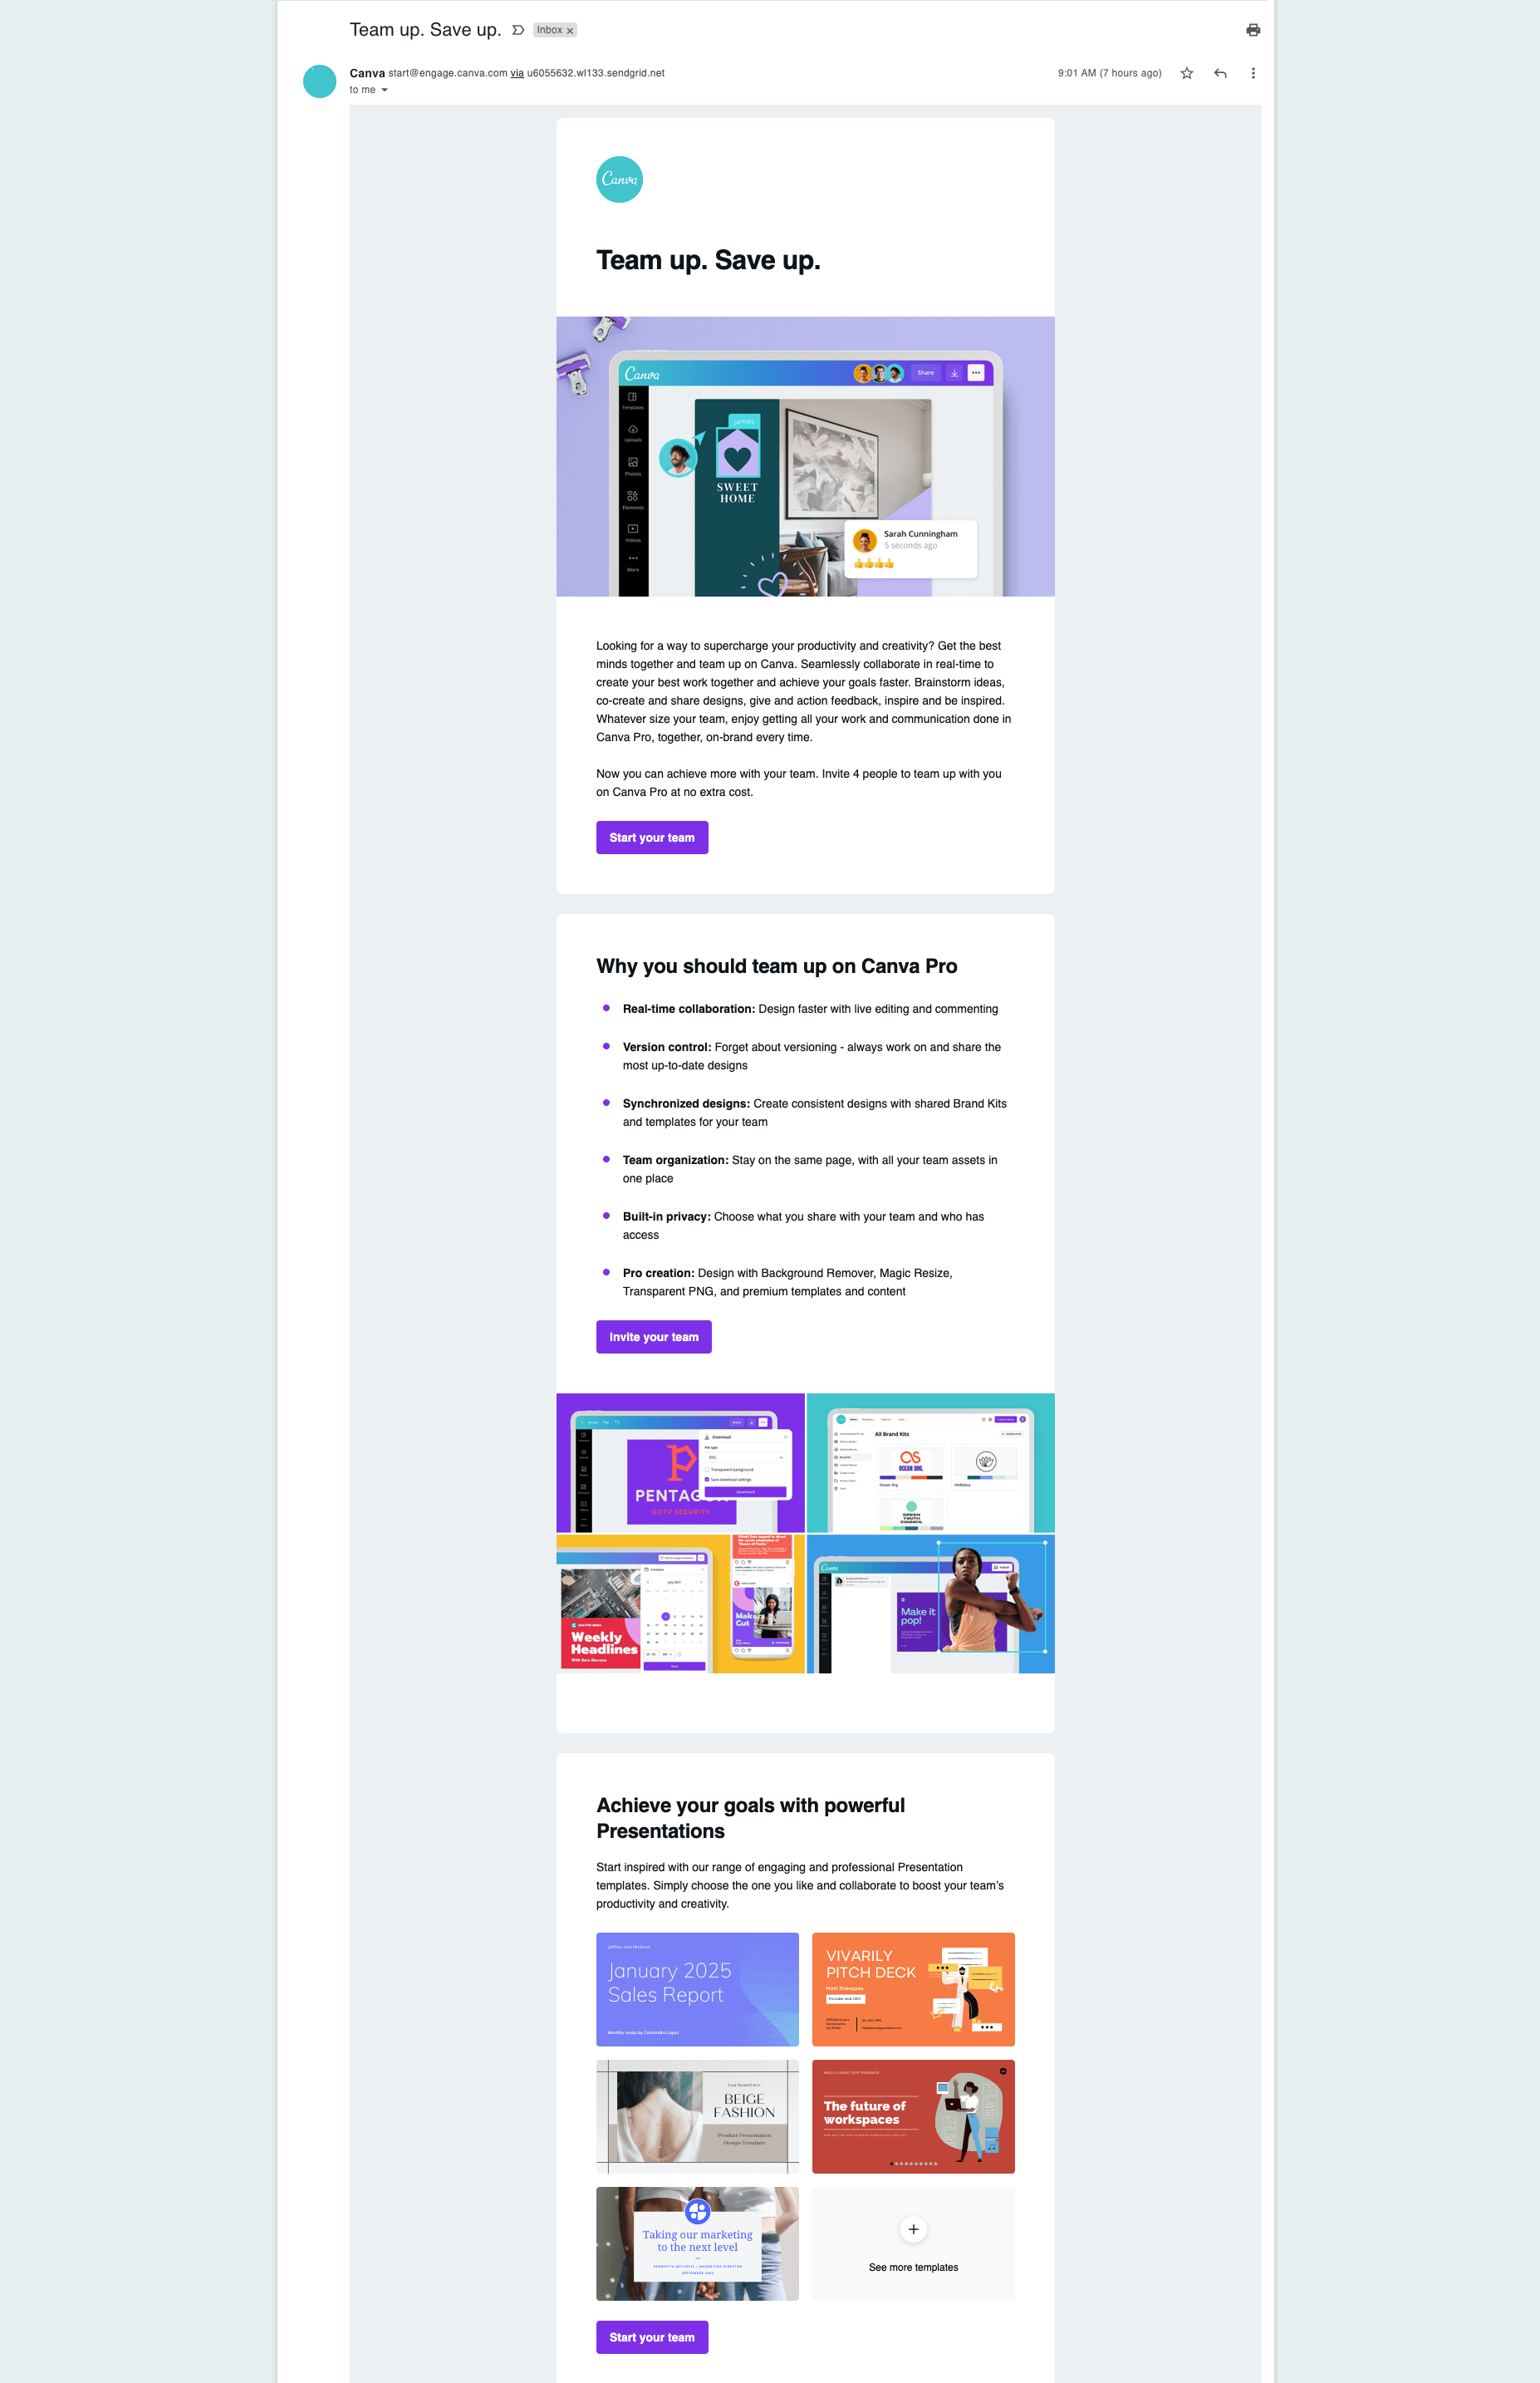 Canva -  CTA for every section